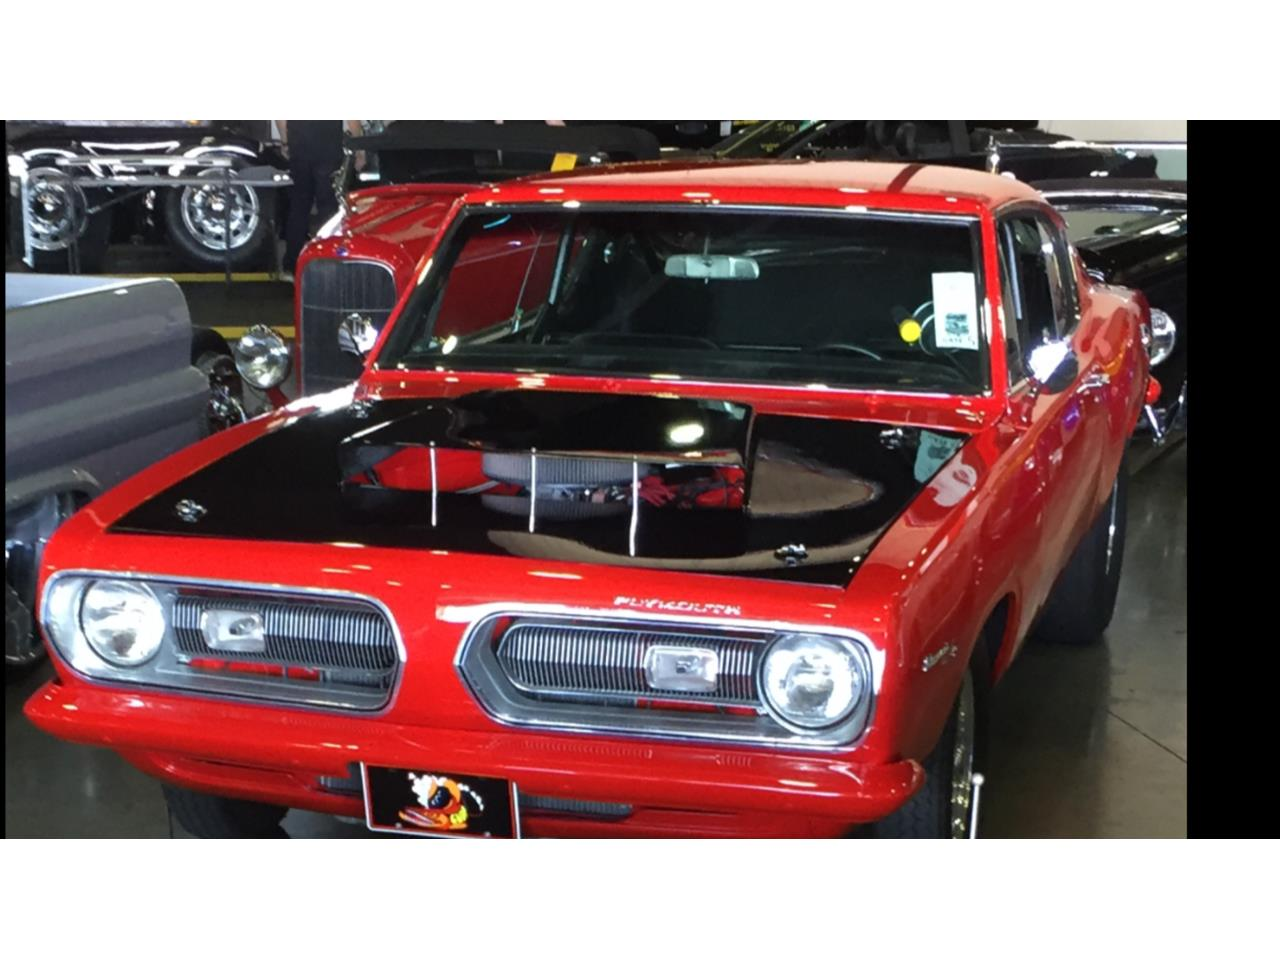 Large Picture of Classic '67 Plymouth Cuda located in California Offered by Classic Car Marketing, Inc. - KGRB